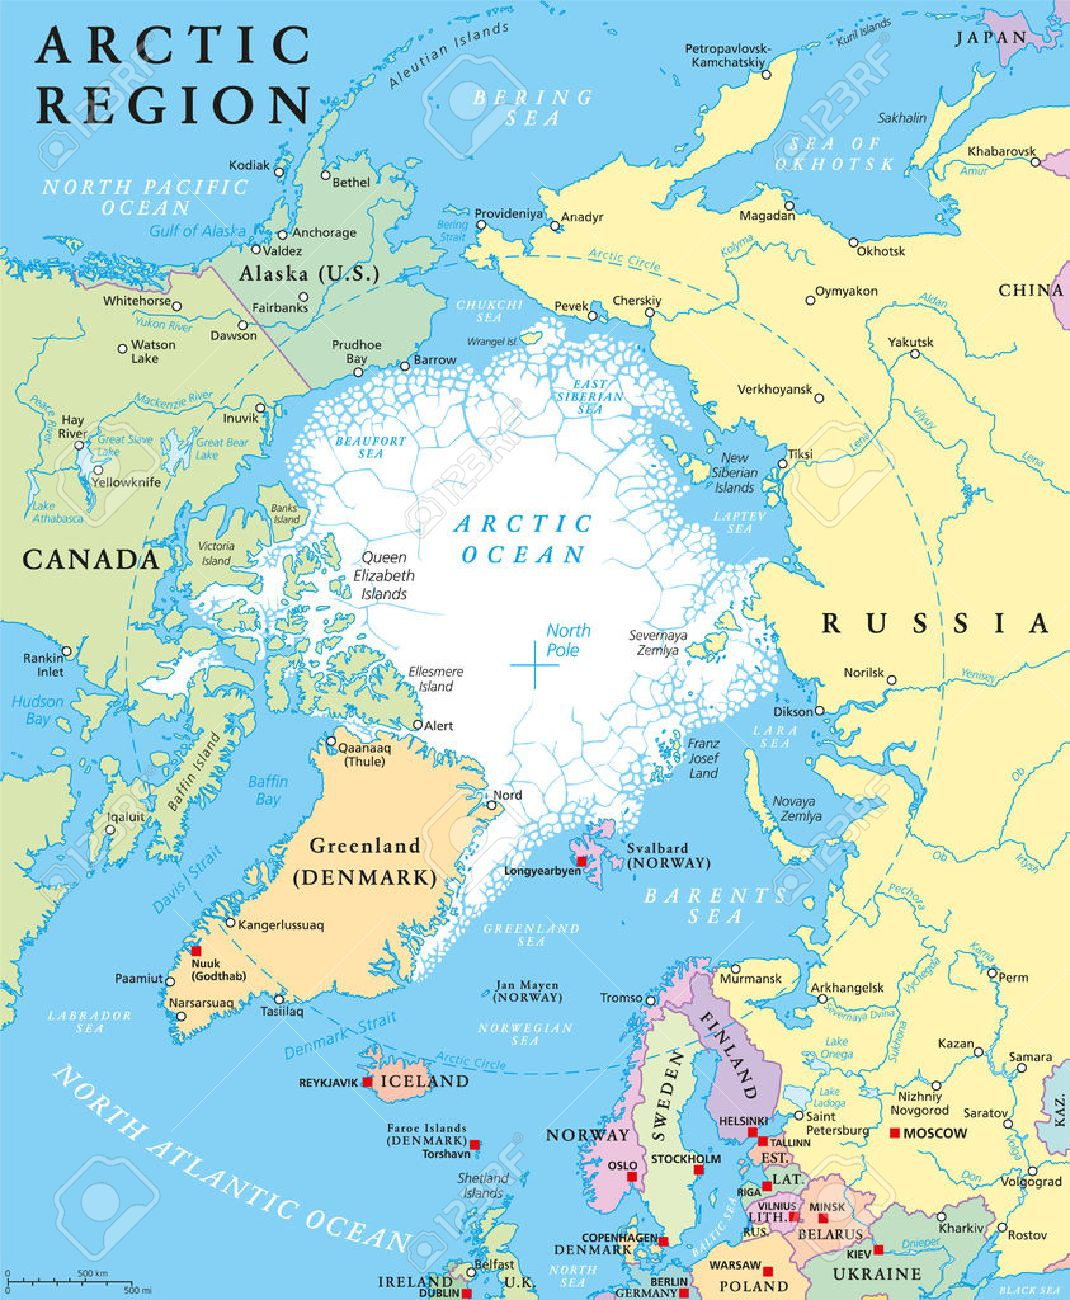 Arctic Region Political Map With Countries Capitals National - China political map in english